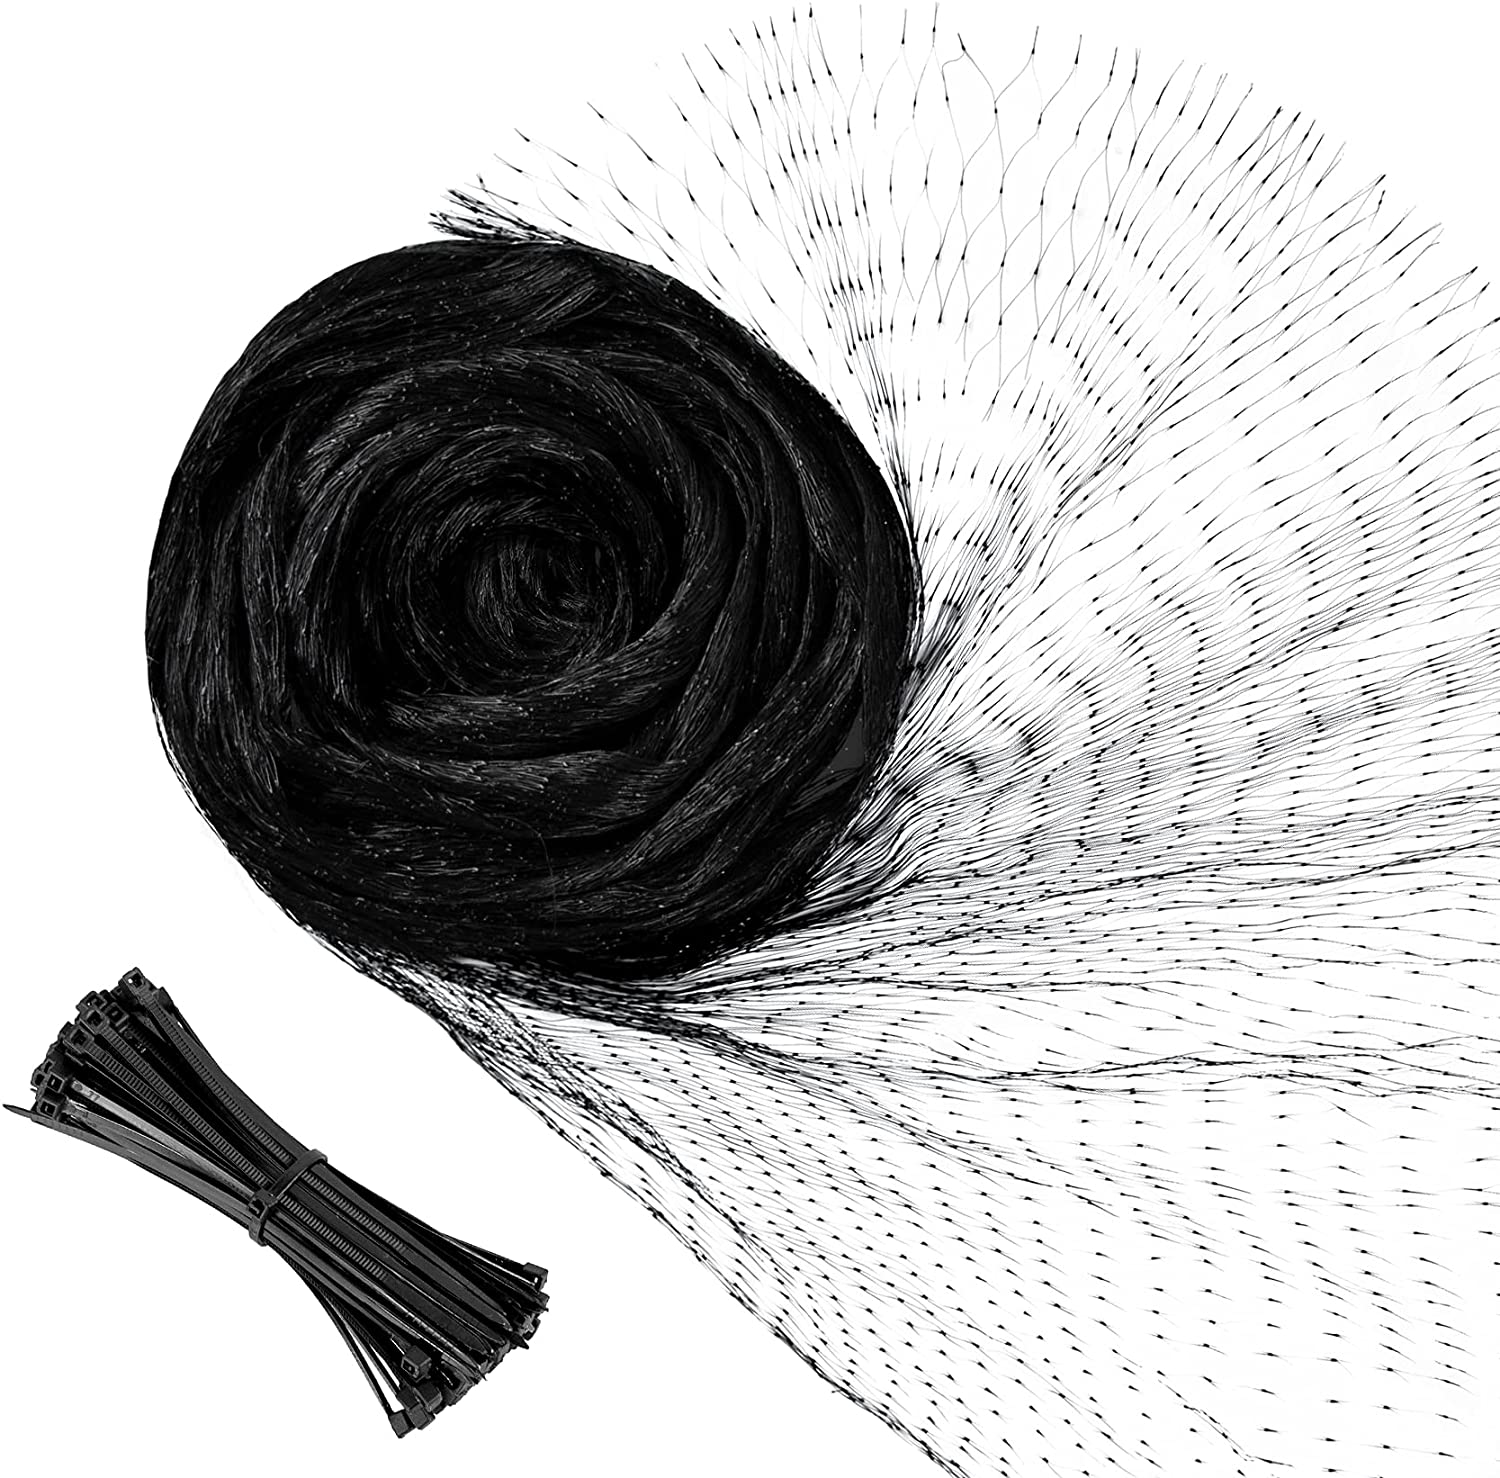 YHmall Bird Netting, Reusable Nylon Garden Netting with 50 Pcs Cable Ties, Fruit Tree Netting with 0.6 Inch Square Mesh Protect Plants and Fruit Trees from Birds and Wildlife (Black, 13 x 16 Ft)